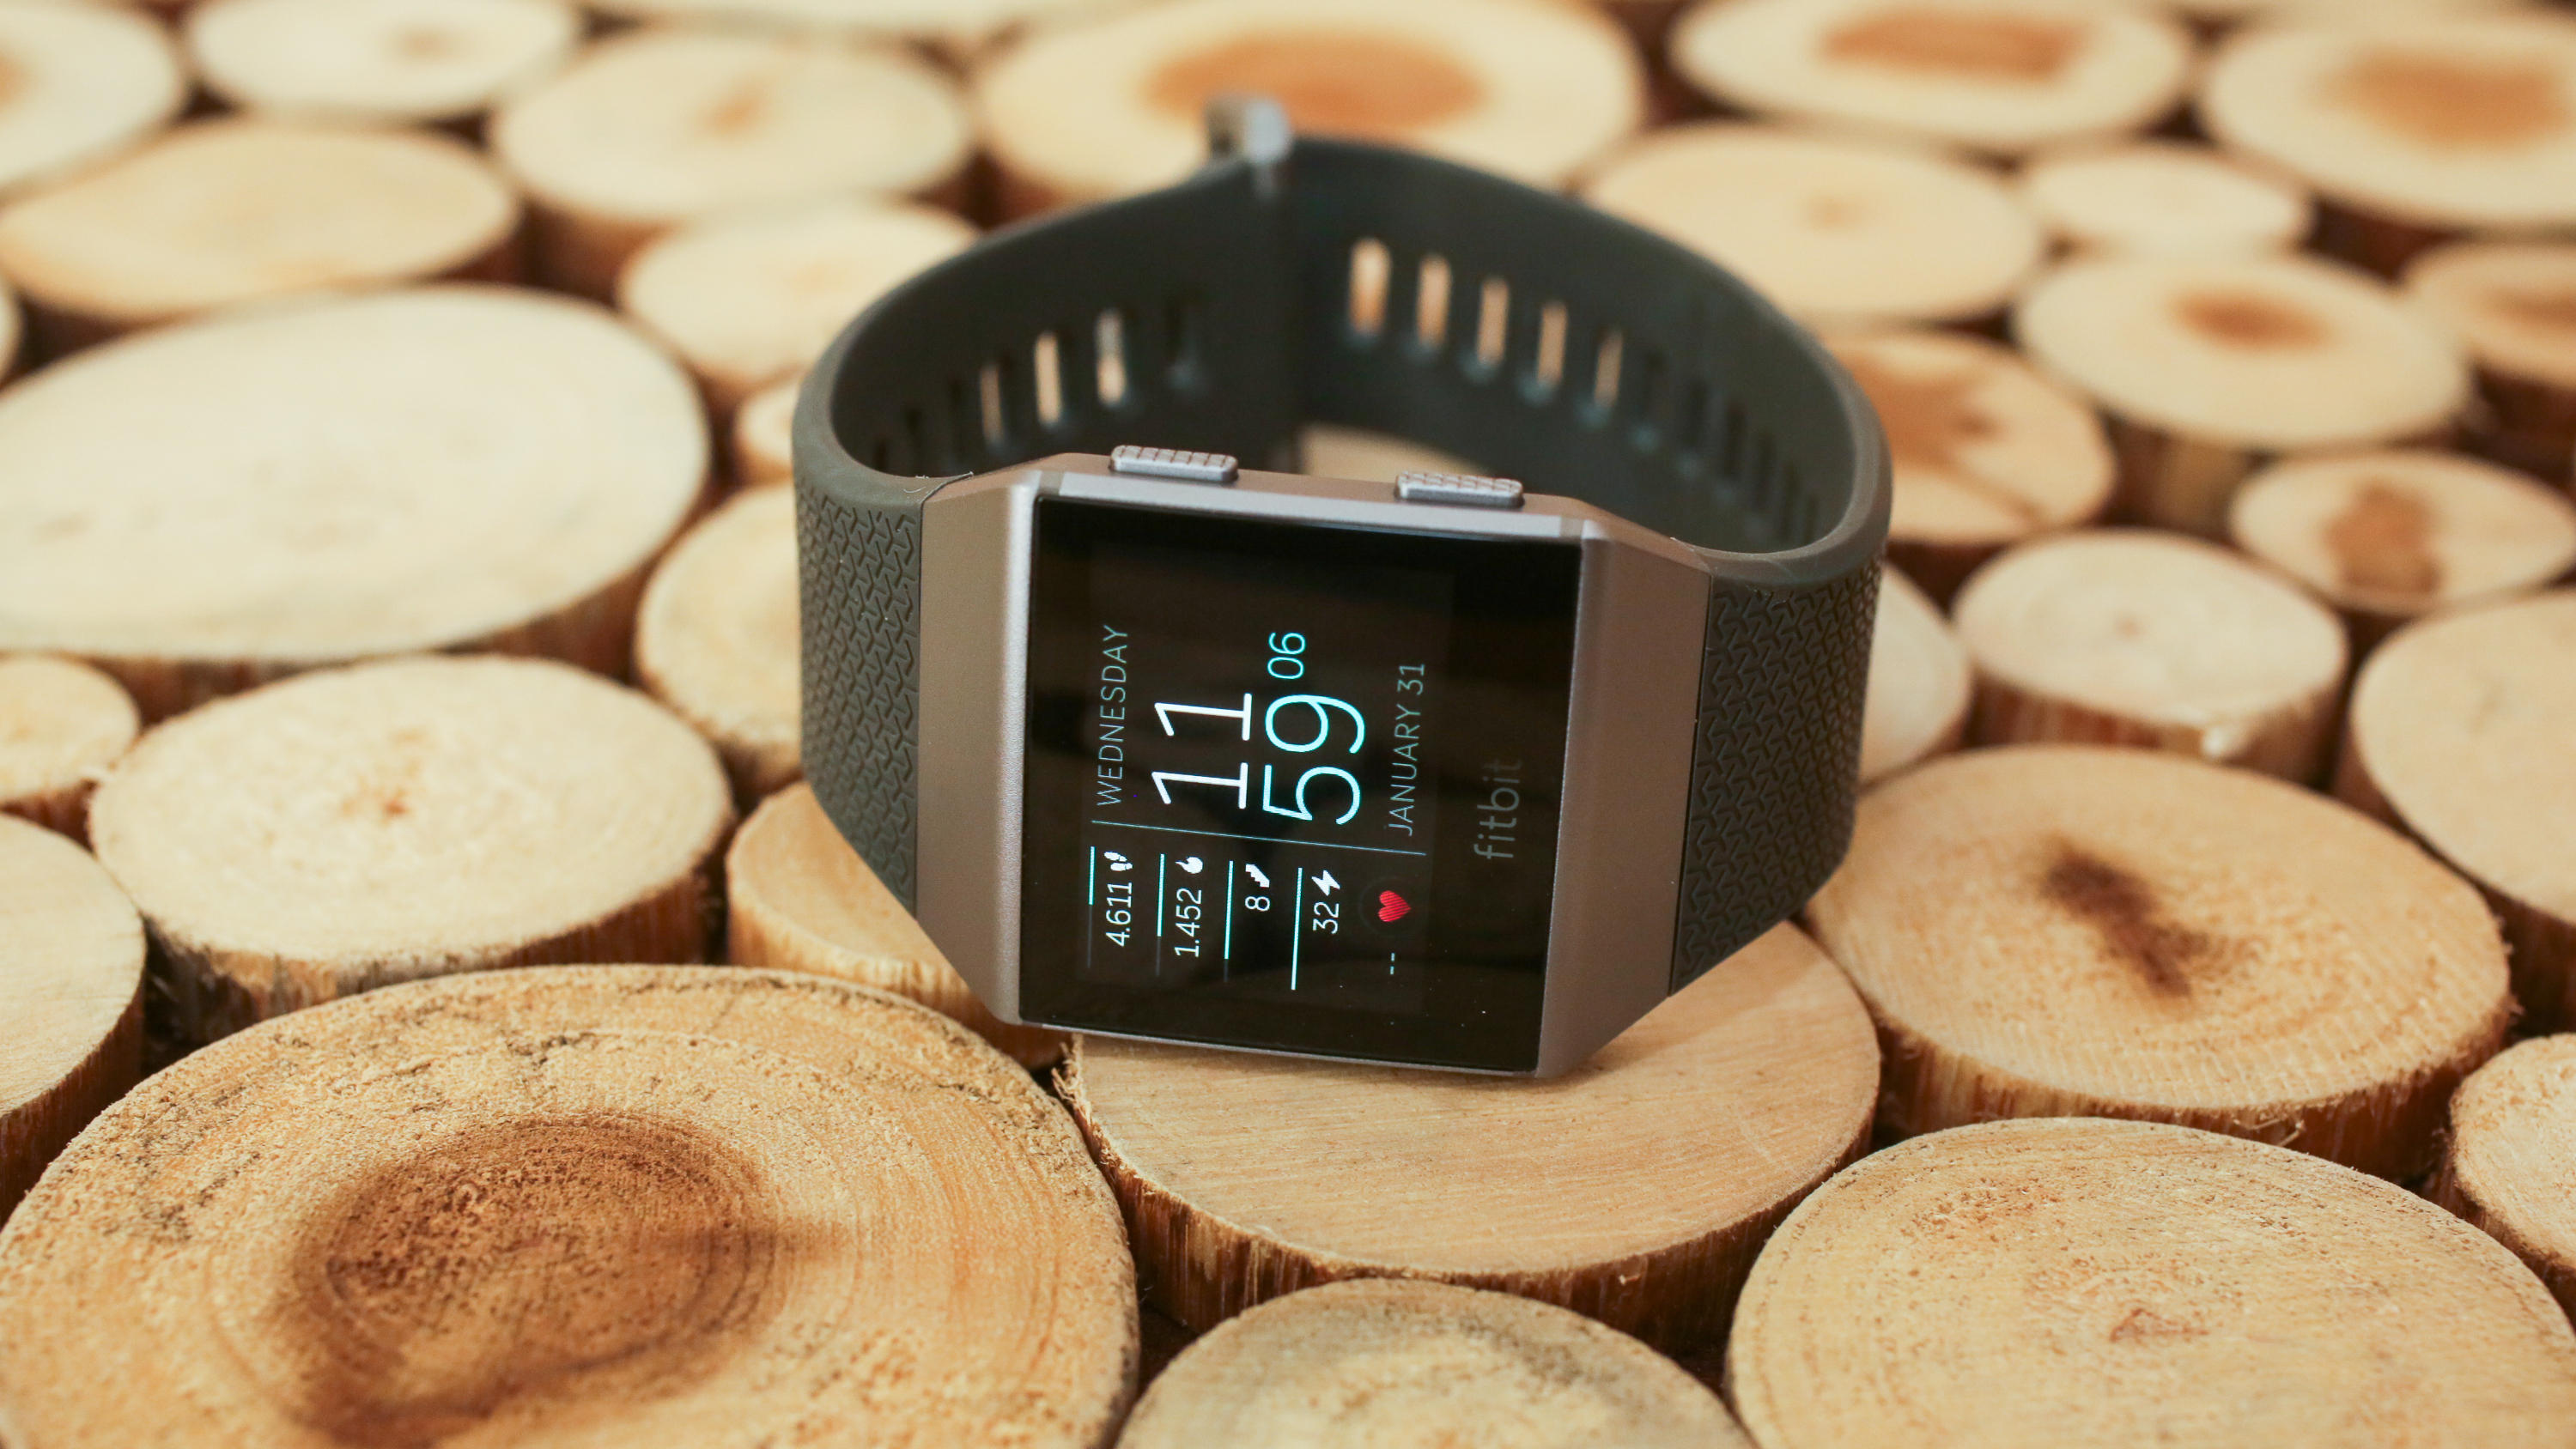 Fitbit Ionic Review Updated Buy The Versa Instead Unless You Really Need Gps Cnet